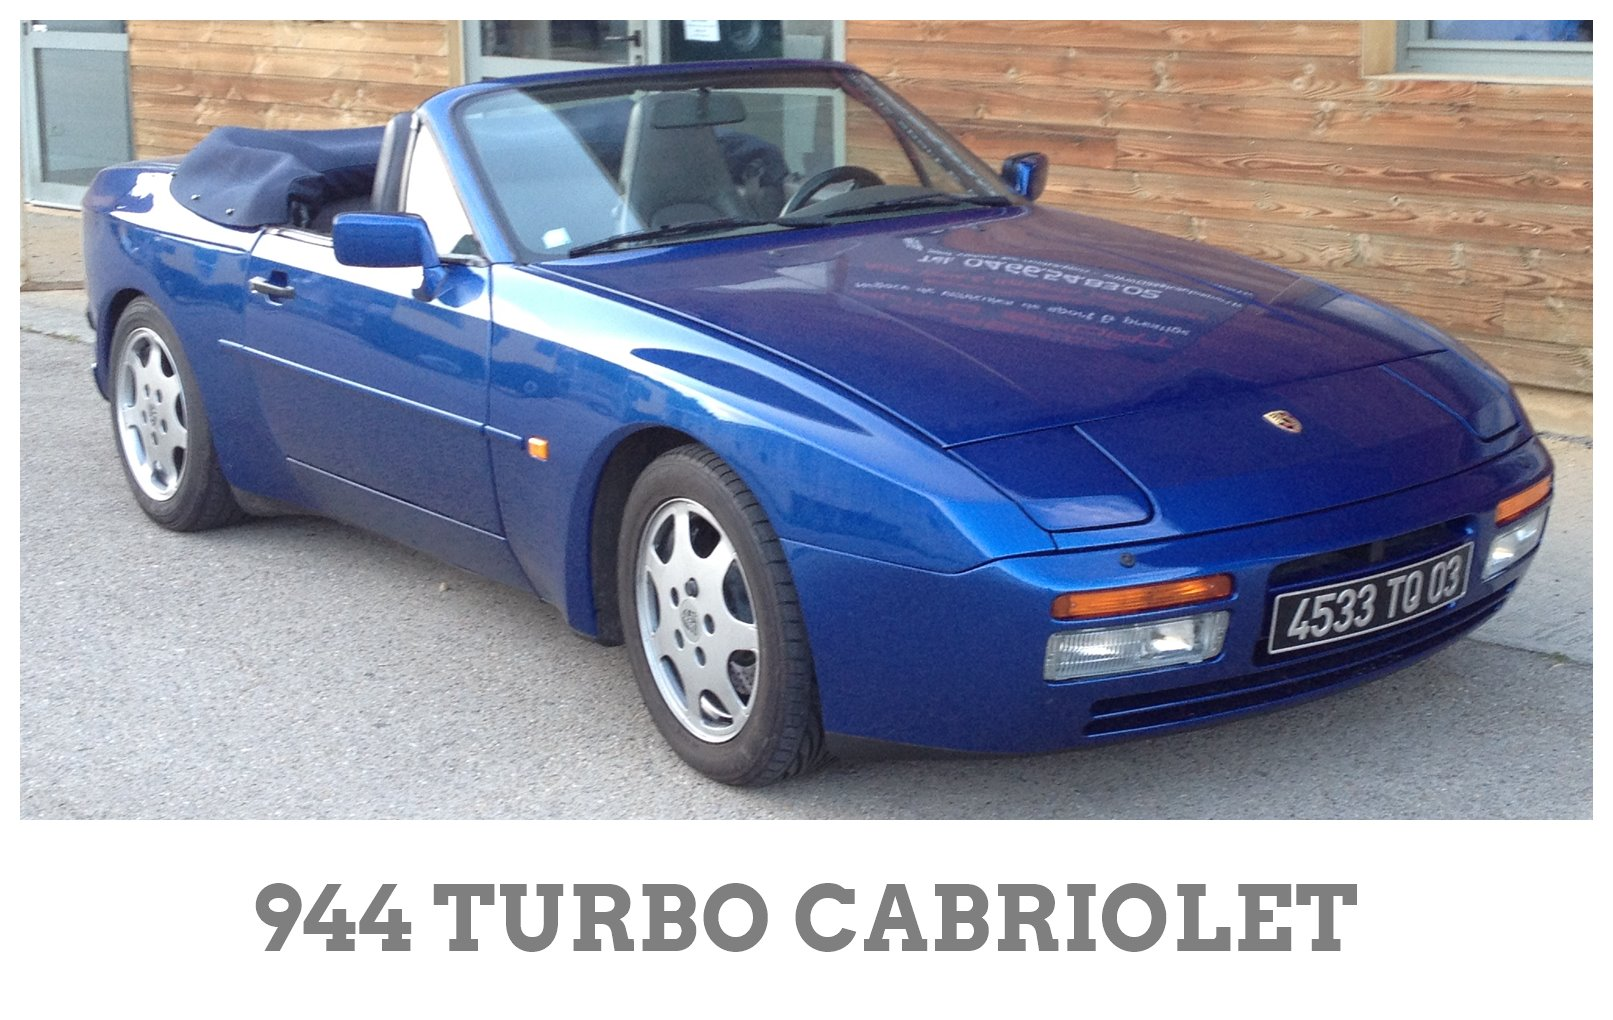 944 TURBO CABRIOLET